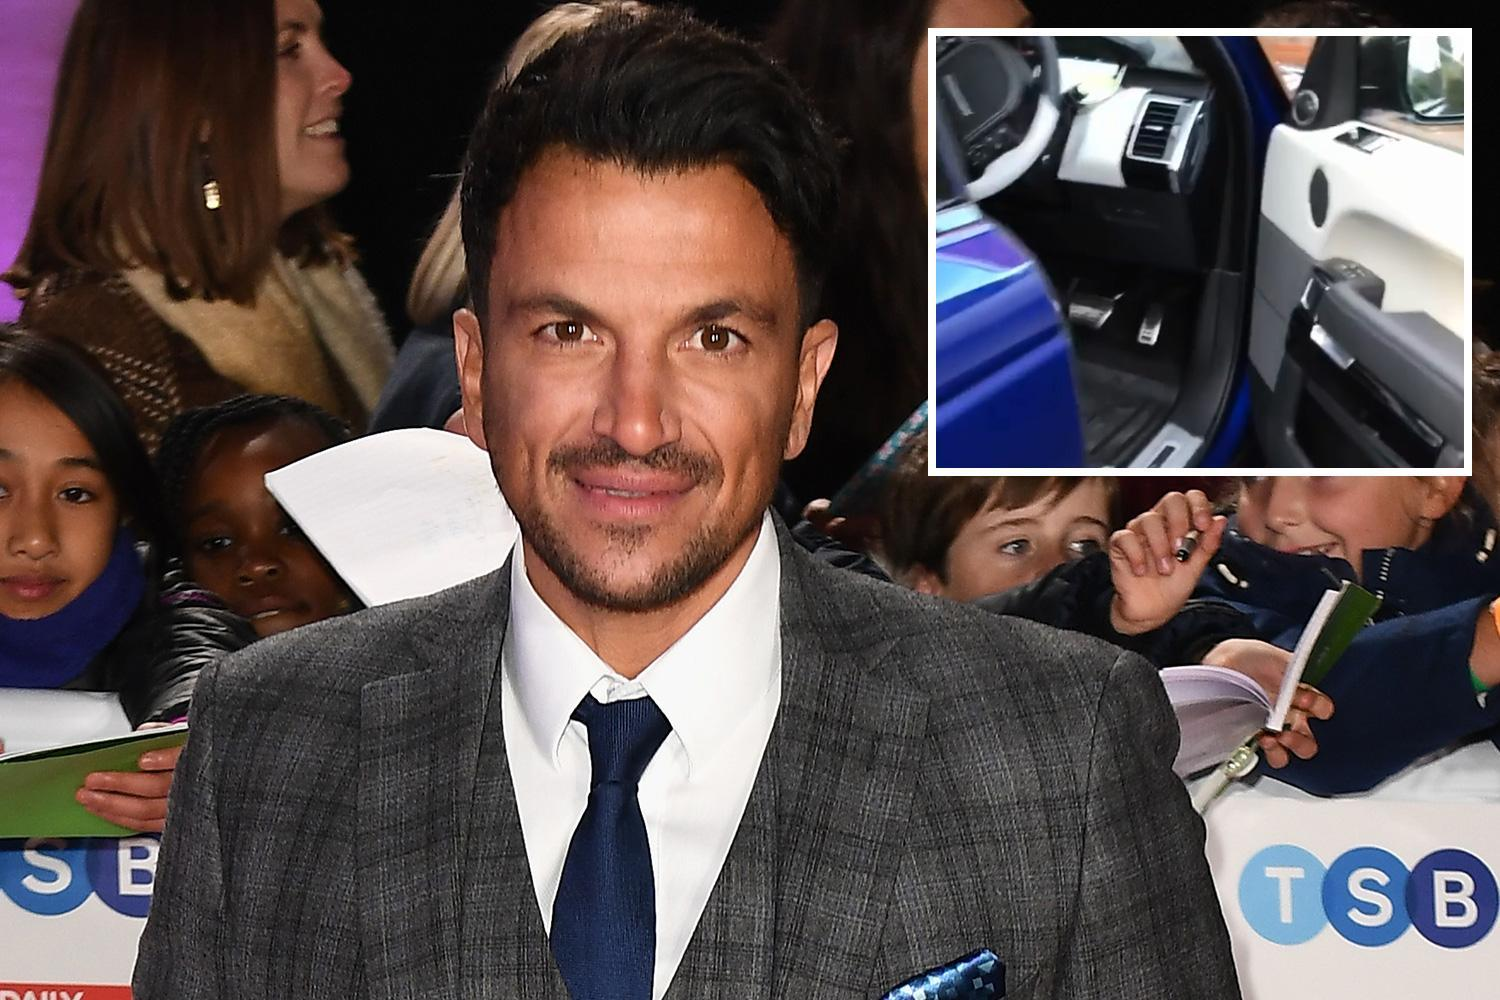 Peter Andre accused of 'showing off' as he test drives £300k worth of cars without making his mind up